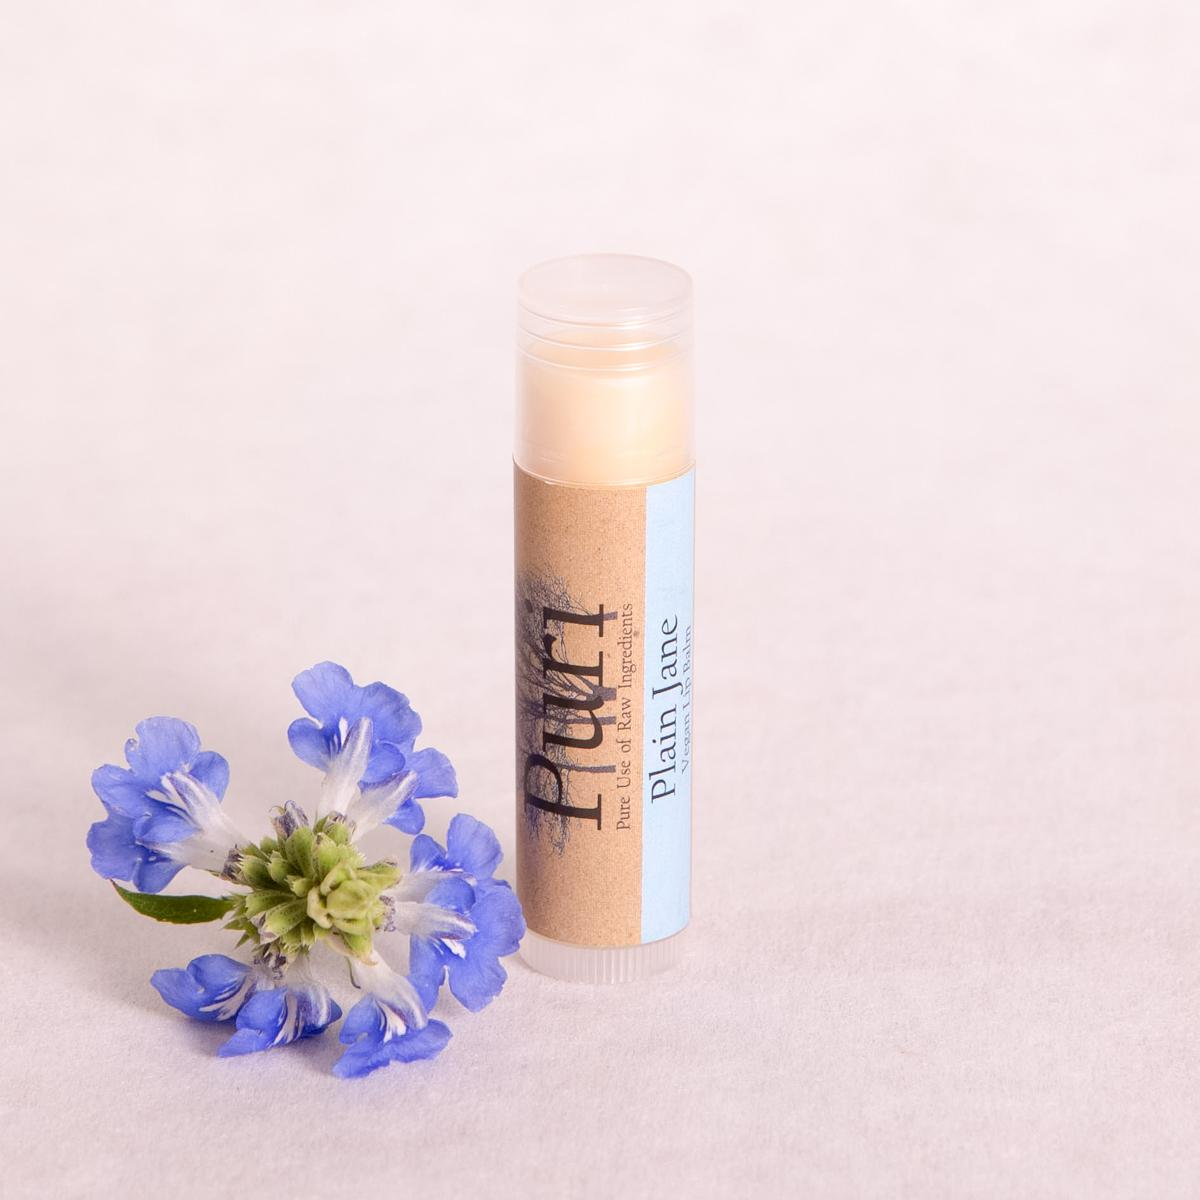 'Plain Jane' Natural Lip Balm - 5ml - Lip Balm - Throw Some Seeds - Australian gardening gifts and eco products online!